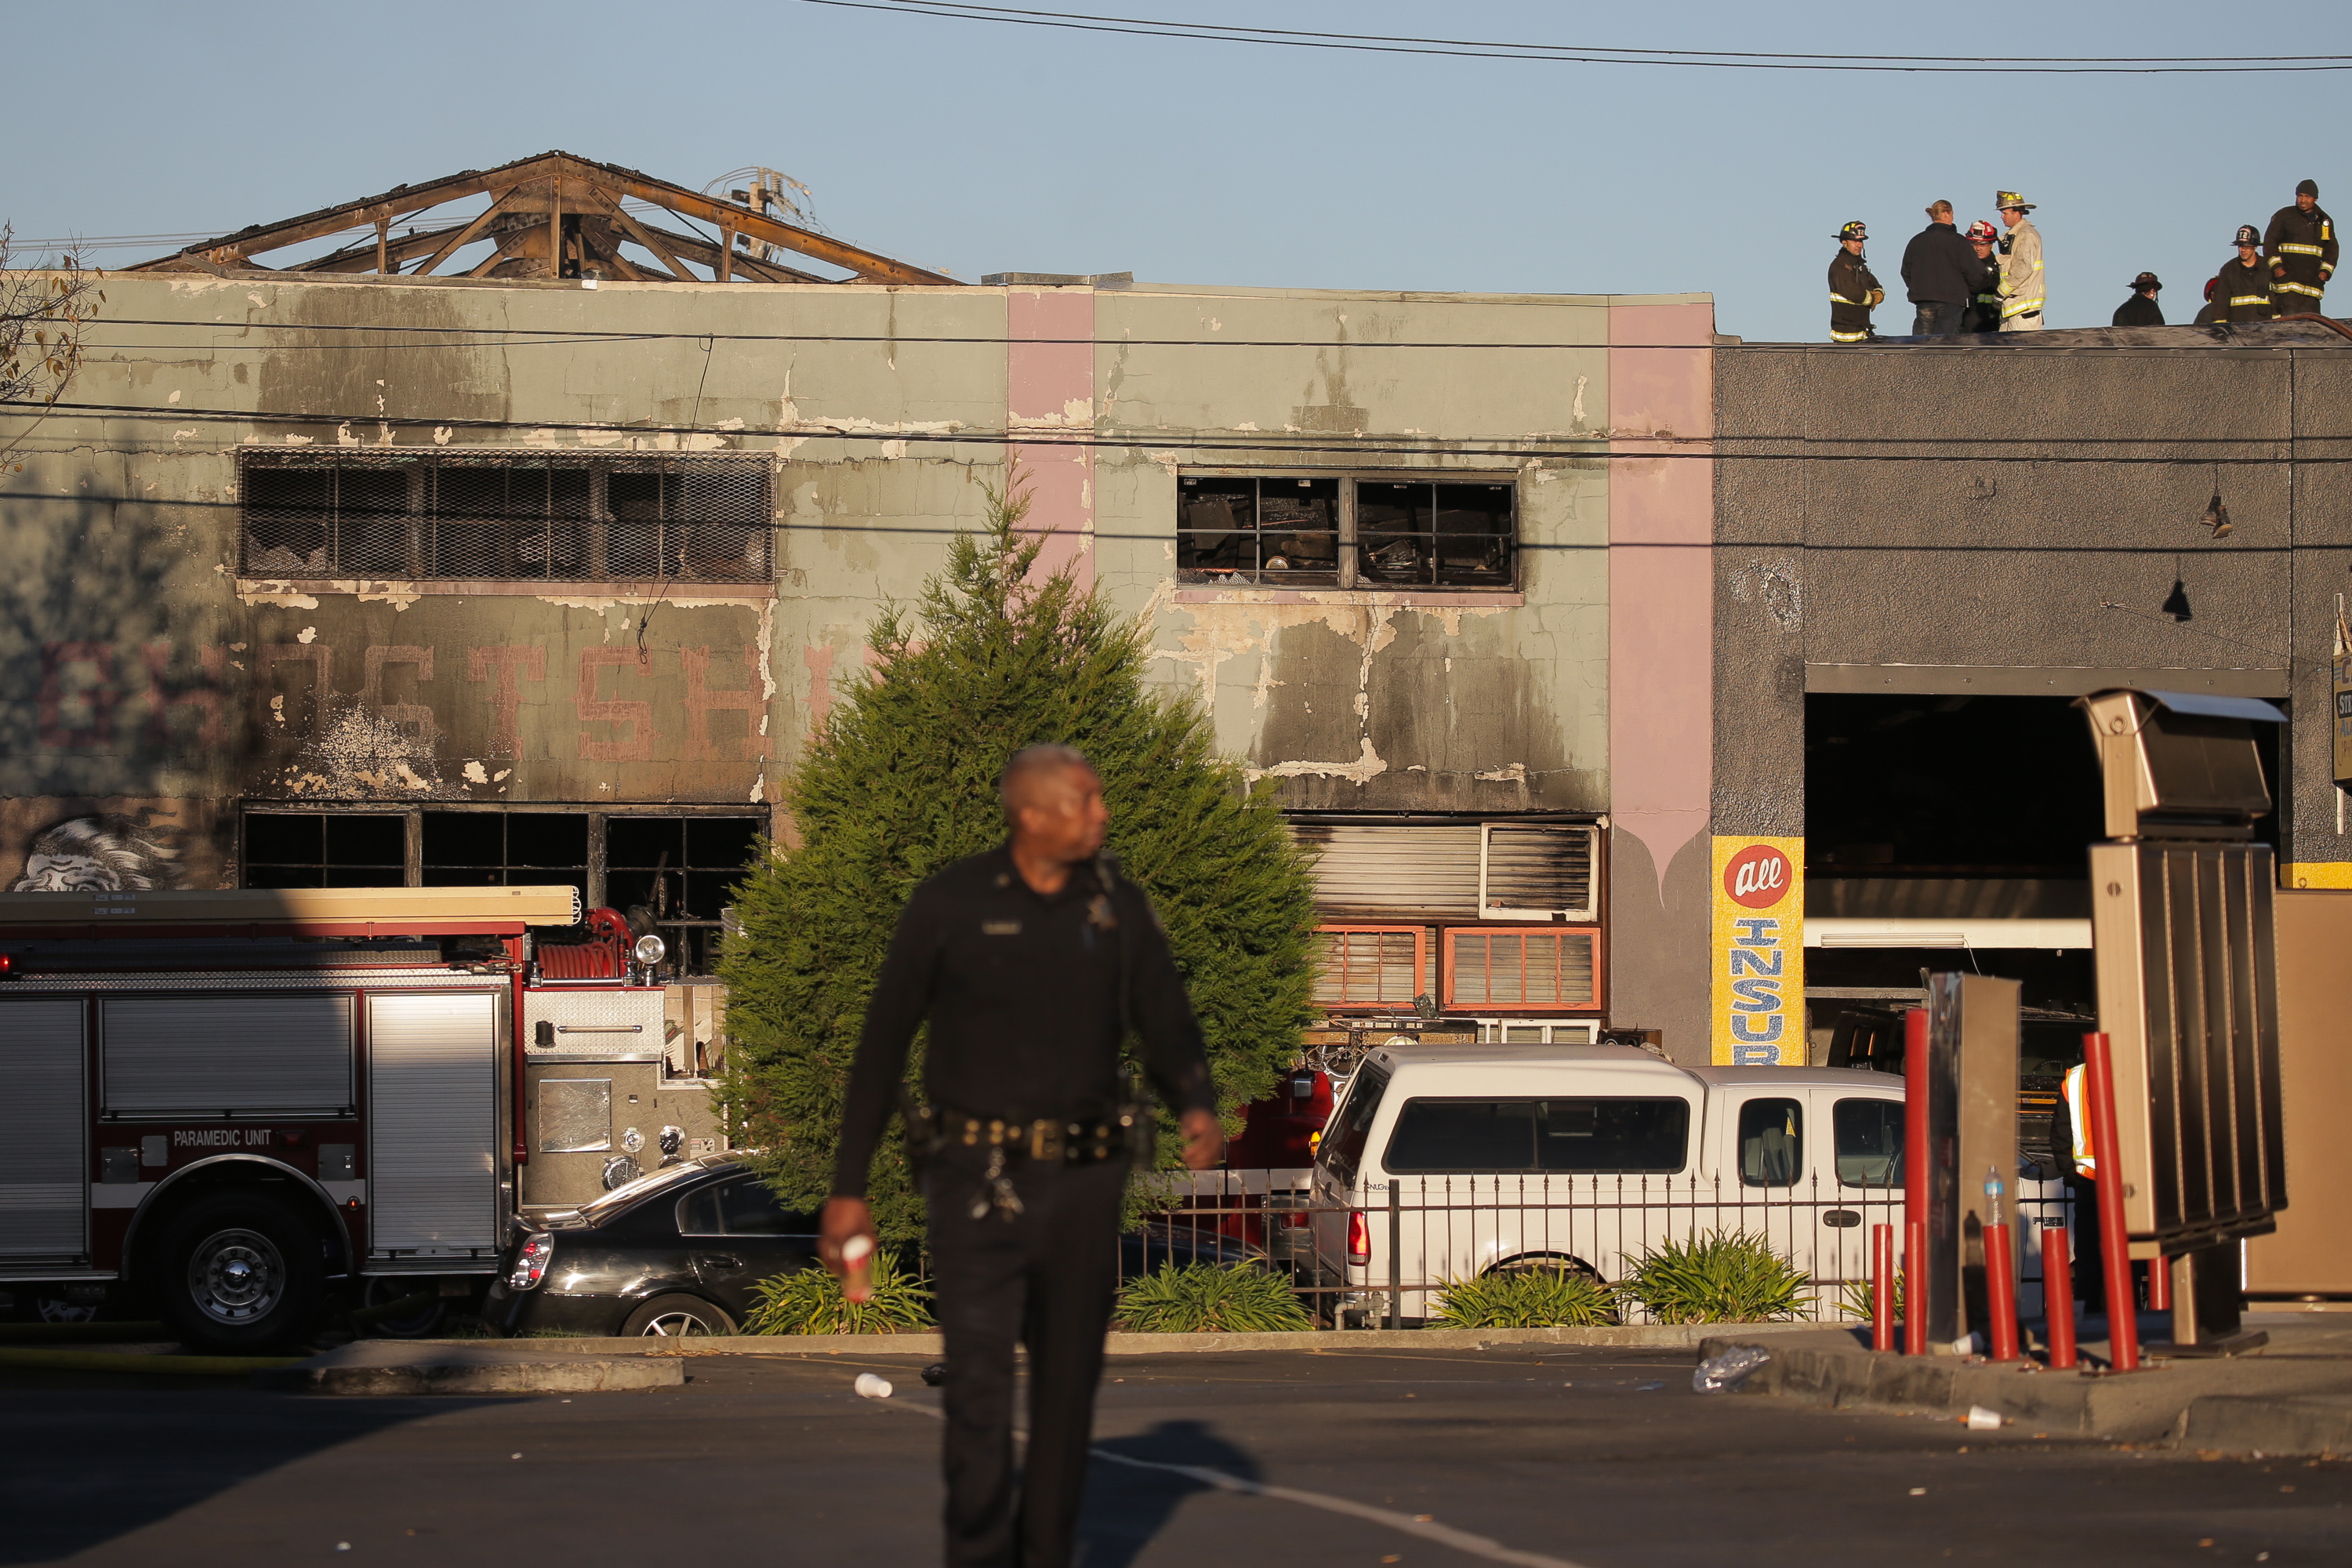 Firefighters and police at the scene of a overnight fire that claimed the lives of at least nine people at a warehouse in the Fruitvale neighborhood on December 3, 2016 in Oakland, California. The warehouse was hosting an electronic music party.  (Getty Images)